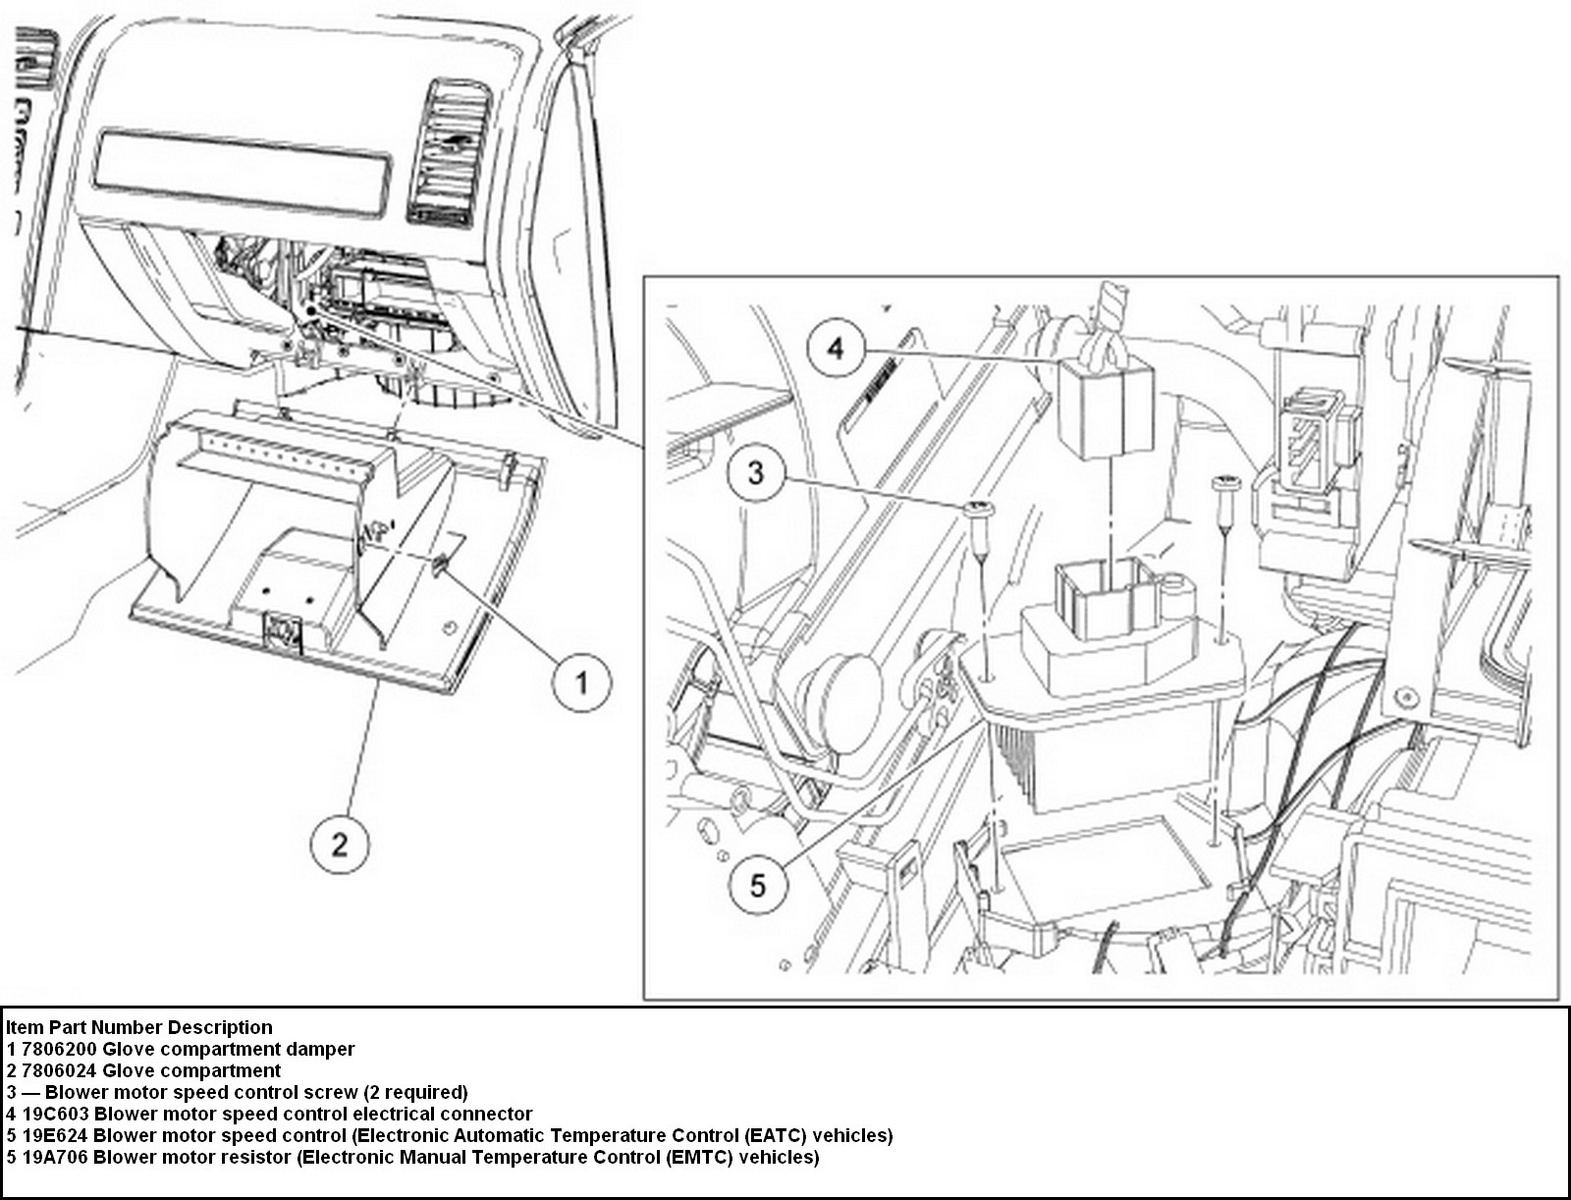 Discussion T24957 ds624347 on 2001 ford taurus radio wiring diagram